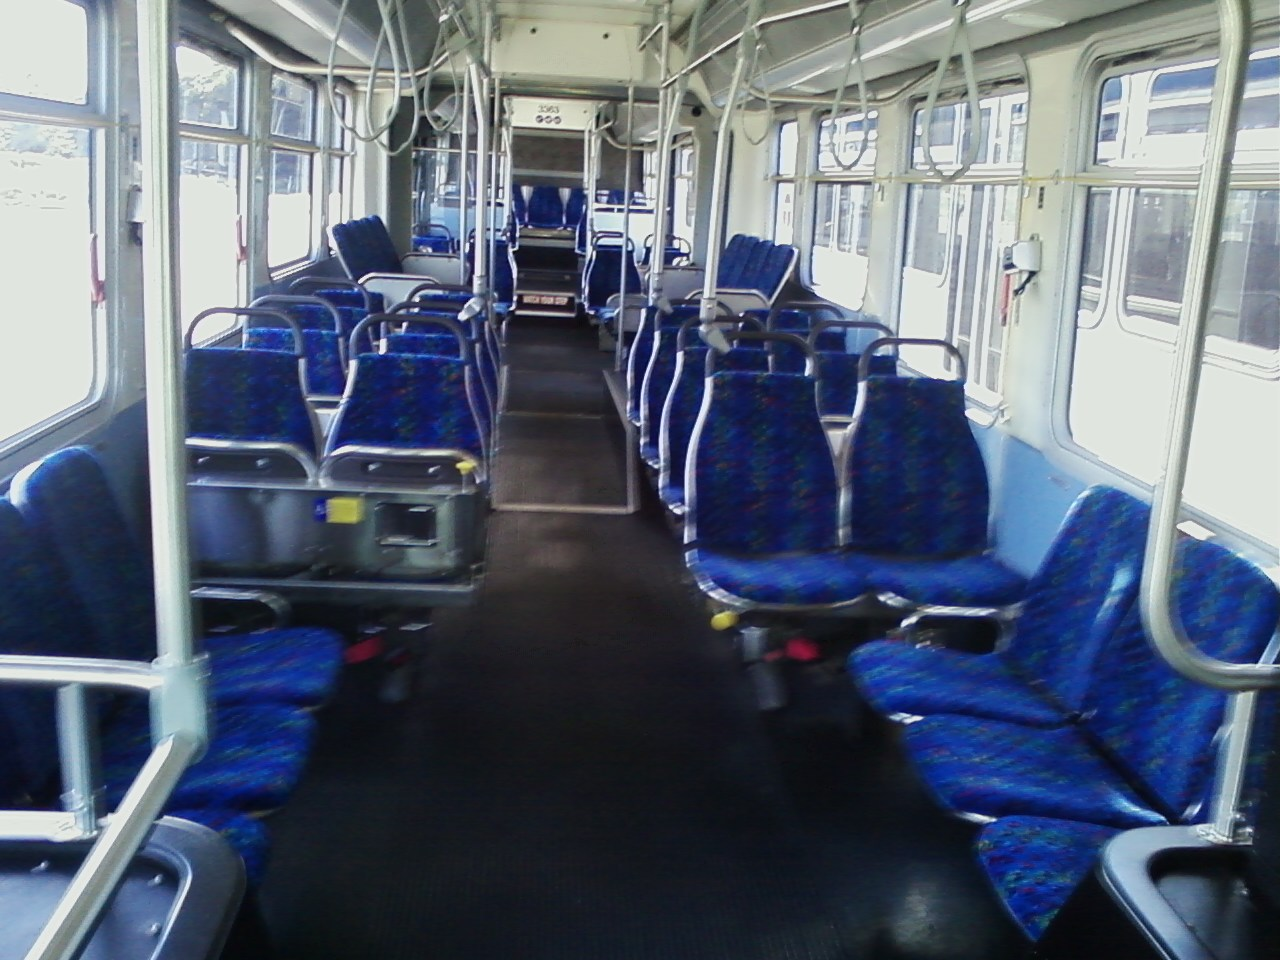 twin cities transit 2011 buses. Black Bedroom Furniture Sets. Home Design Ideas